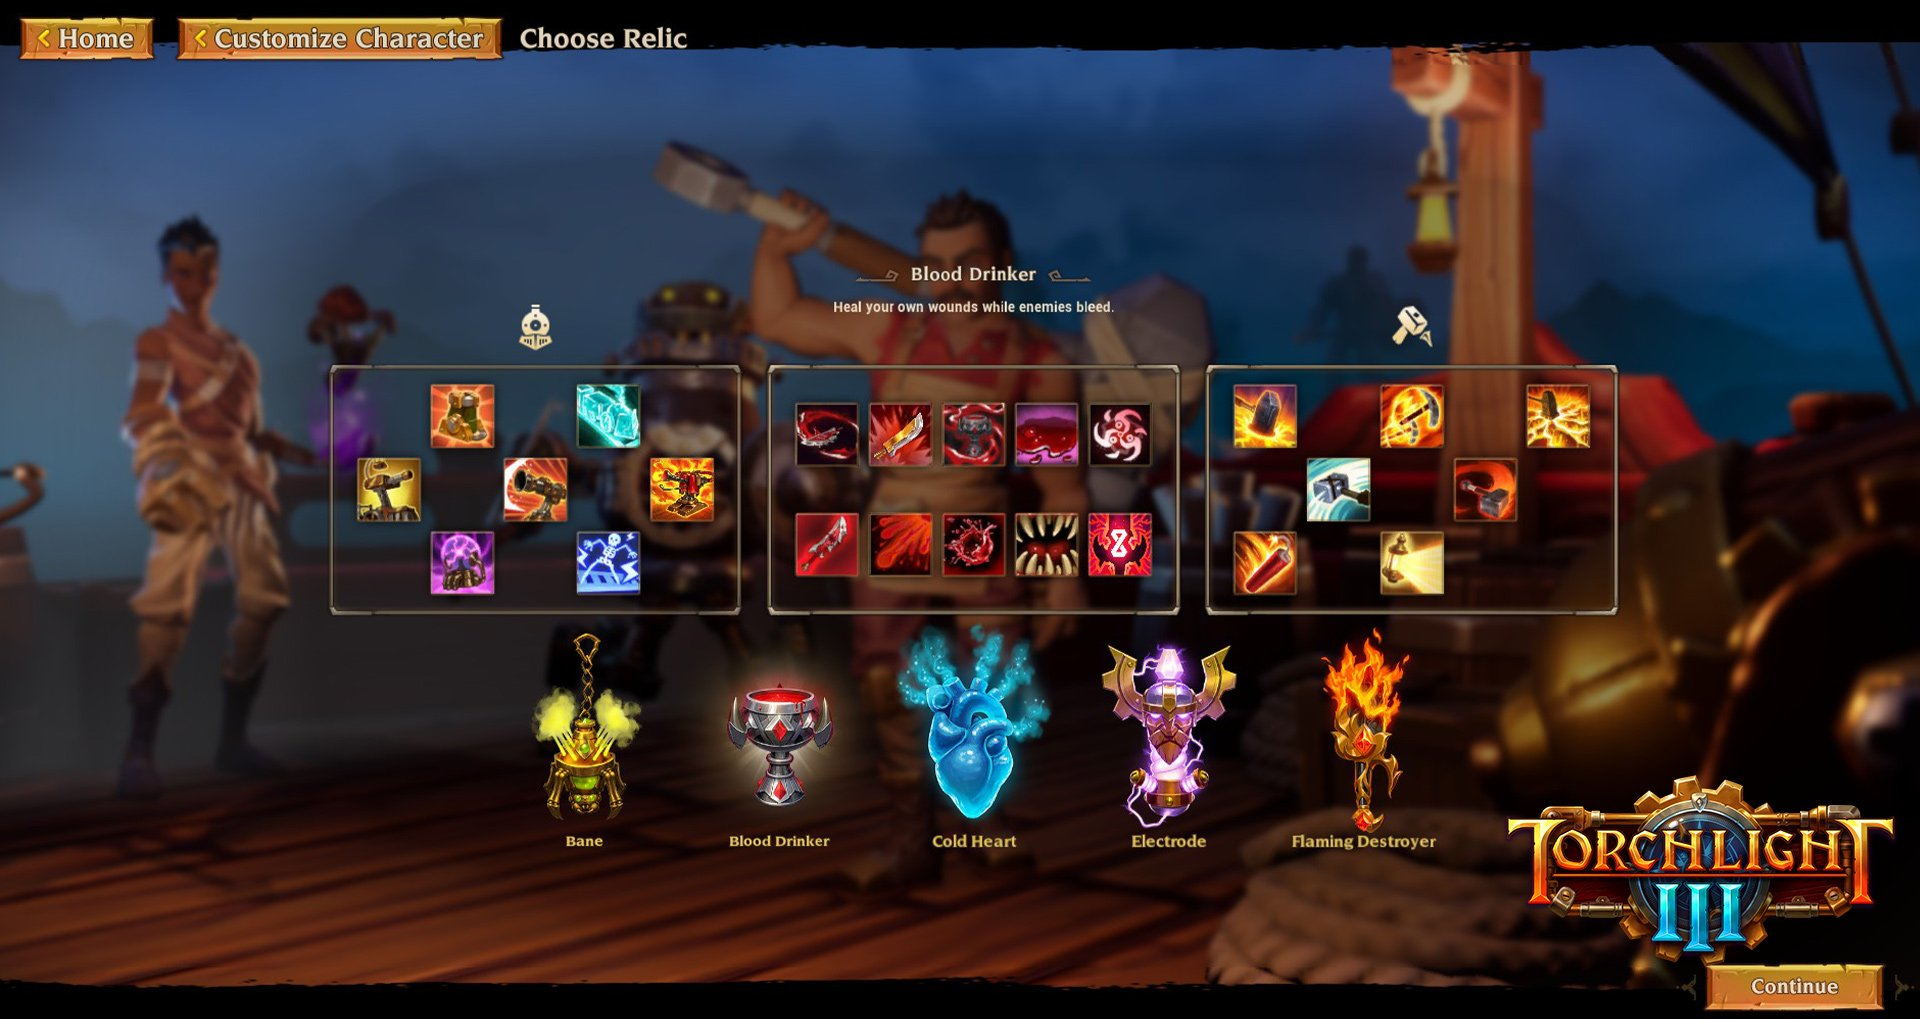 Each class in Torchlight III can choose one permanent Relic as their subclass